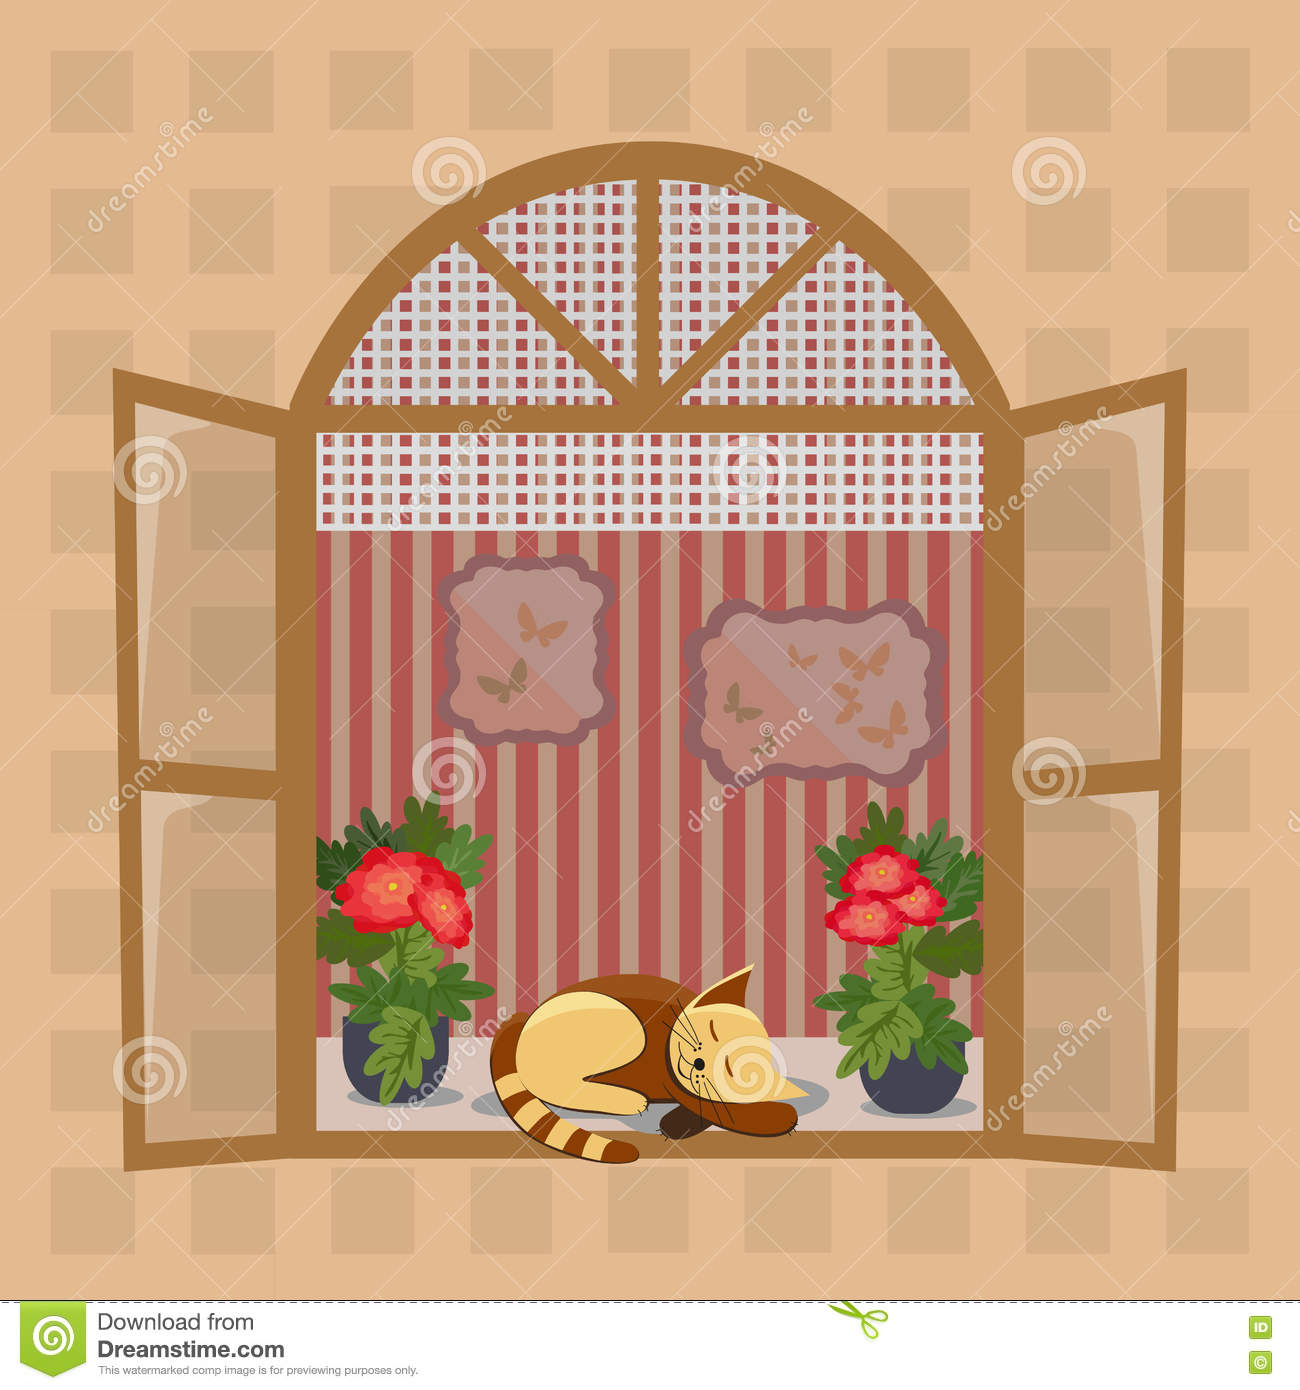 Window inside view stock illustration. Illustration of architecture ... for Inside Window Clipart  173lyp